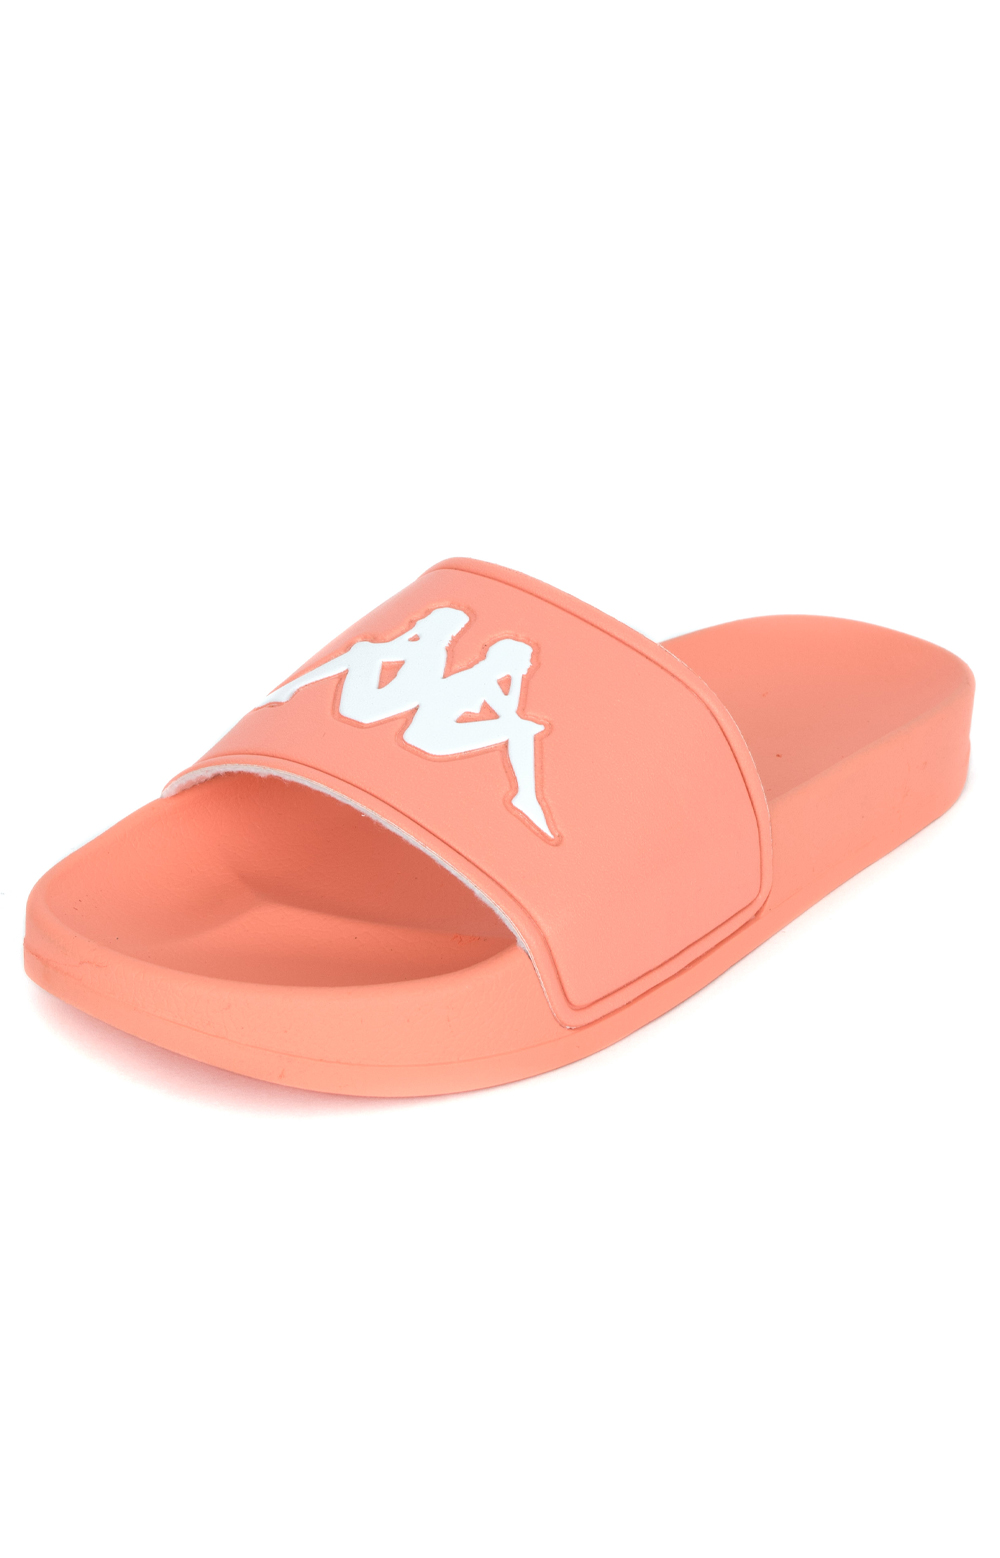 Kappa, Authentic Adam 2 Slides - Pink